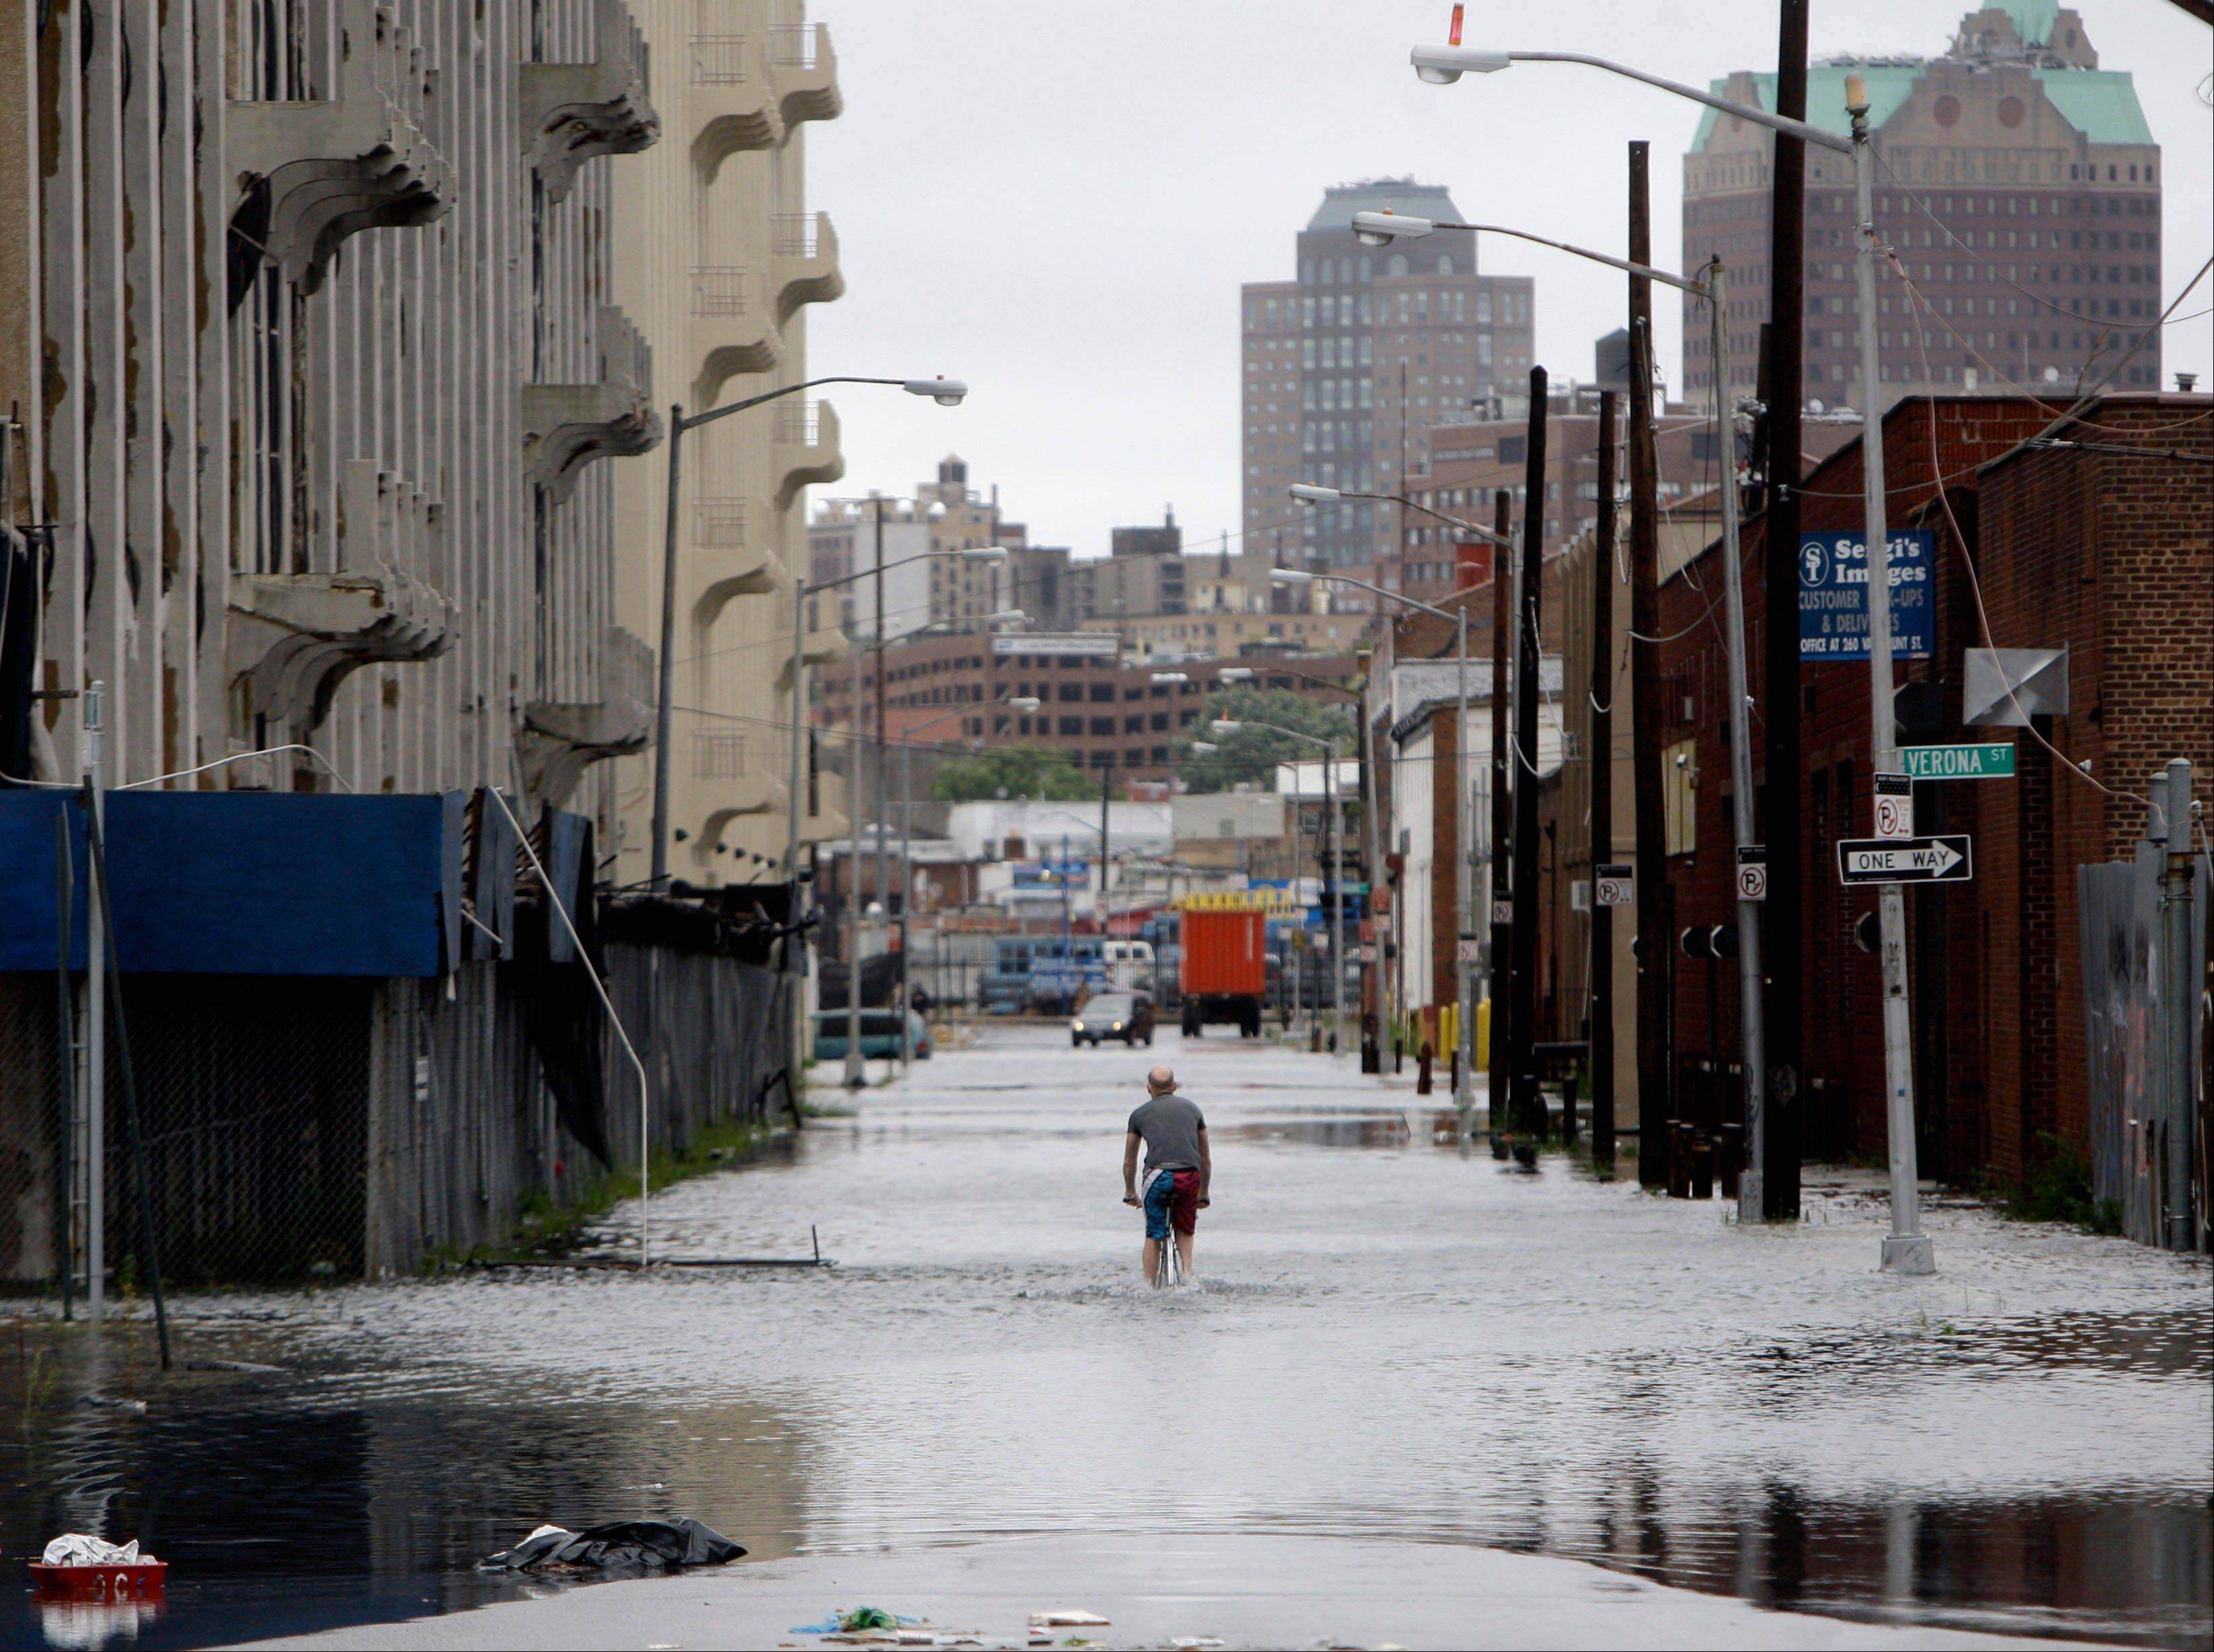 A police officer is parked at the end of a flooded street in Brooklyn, New York, Sunday, Aug. 28, 2011. Seawater surged into the streets of Manhattan on Sunday as Tropical Storm Irene slammed into New York, downgraded from a hurricane but still unleashing furious wind and rain. The flooding threatened Wall Street and the heart of the global financial network.